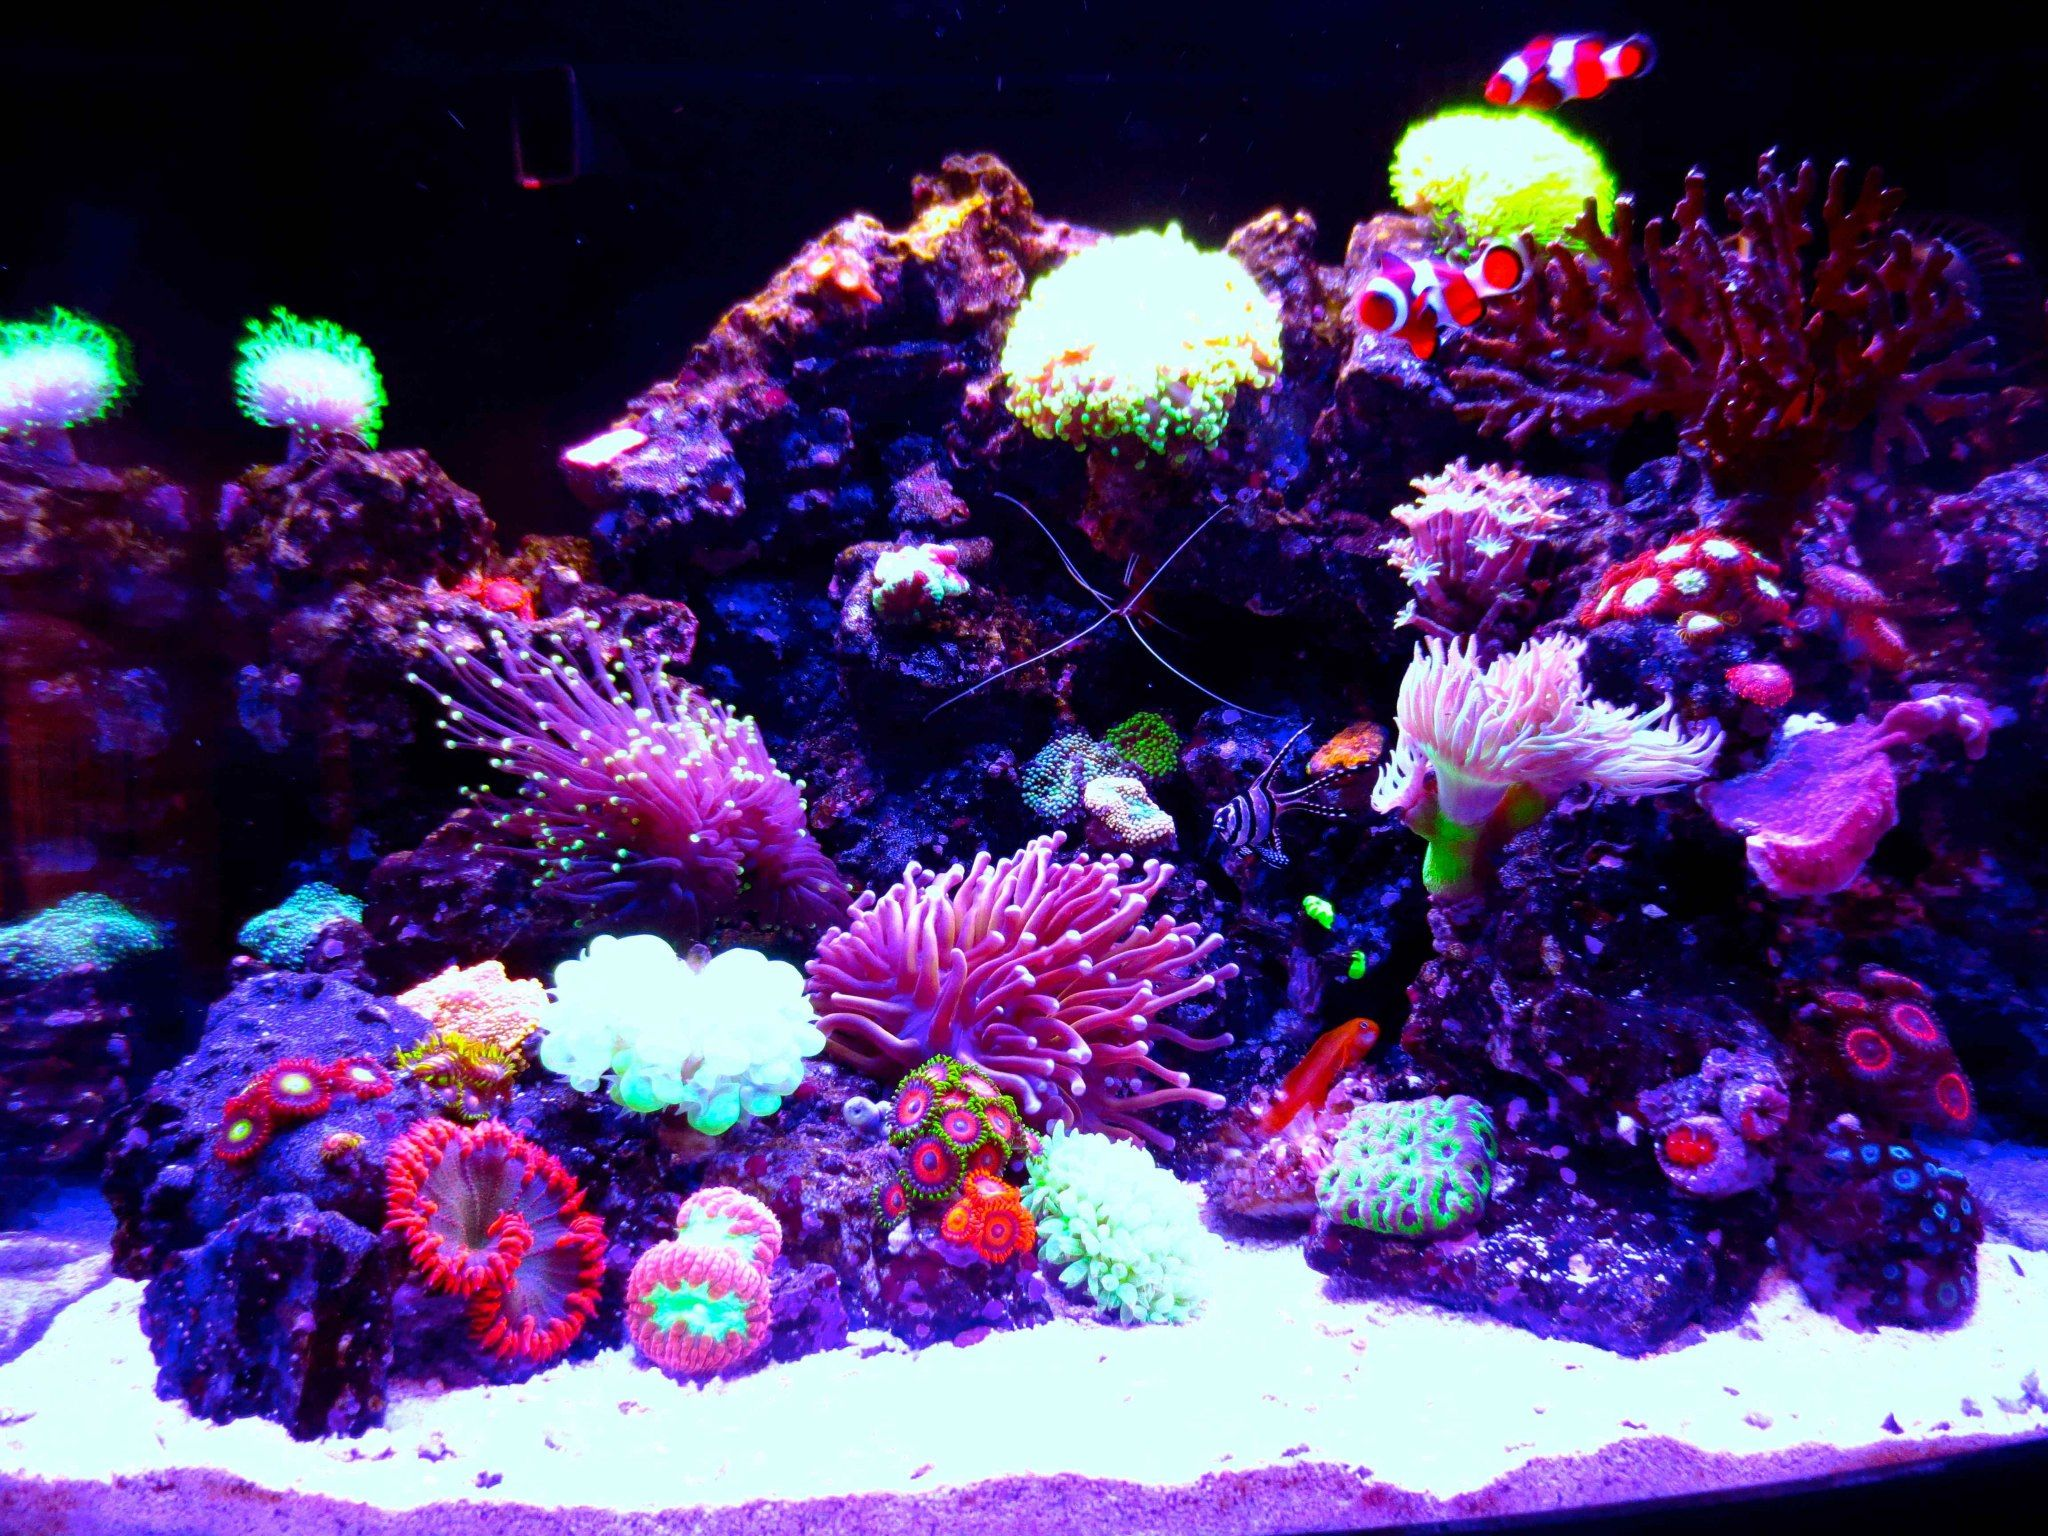 Saltwater aquarium - Check Out My Coral Reef Saltwater Tank Nano Aquarium Http Youtu